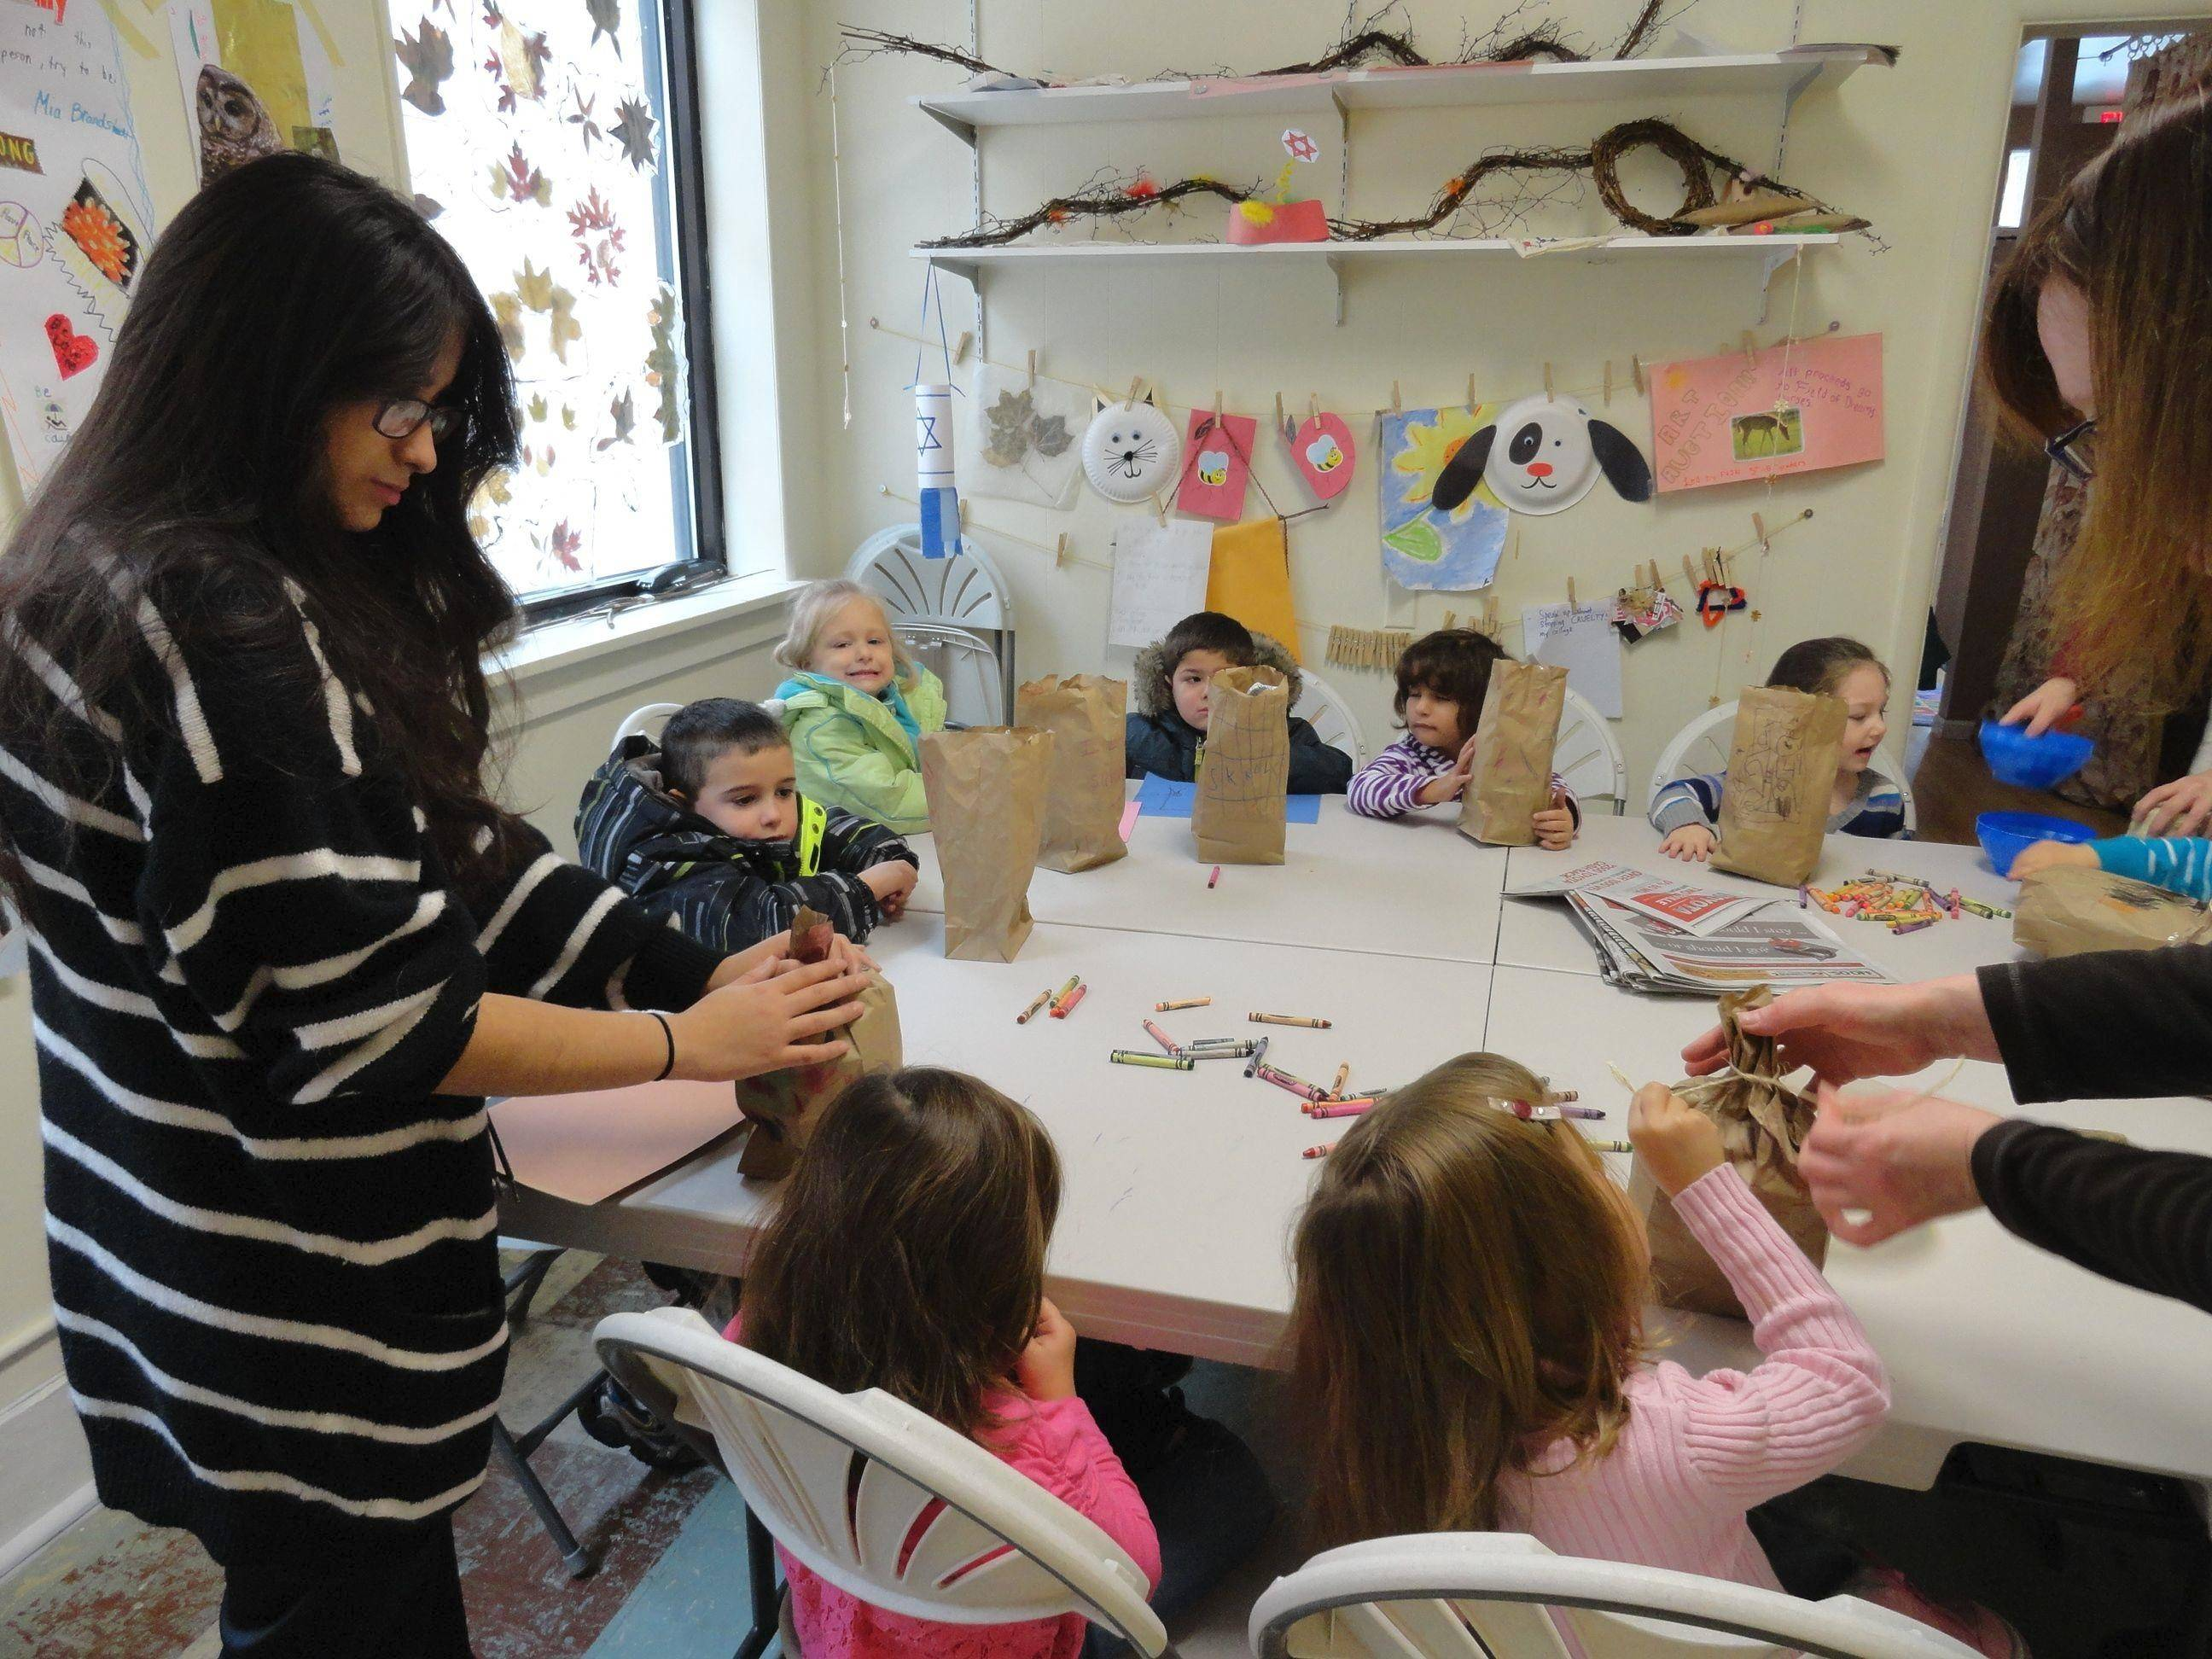 Fox Valley Jewish School students in prekindergarten to second grade made treat bags for the squirrels at Fox Valley Wildlife Center in Elburn.